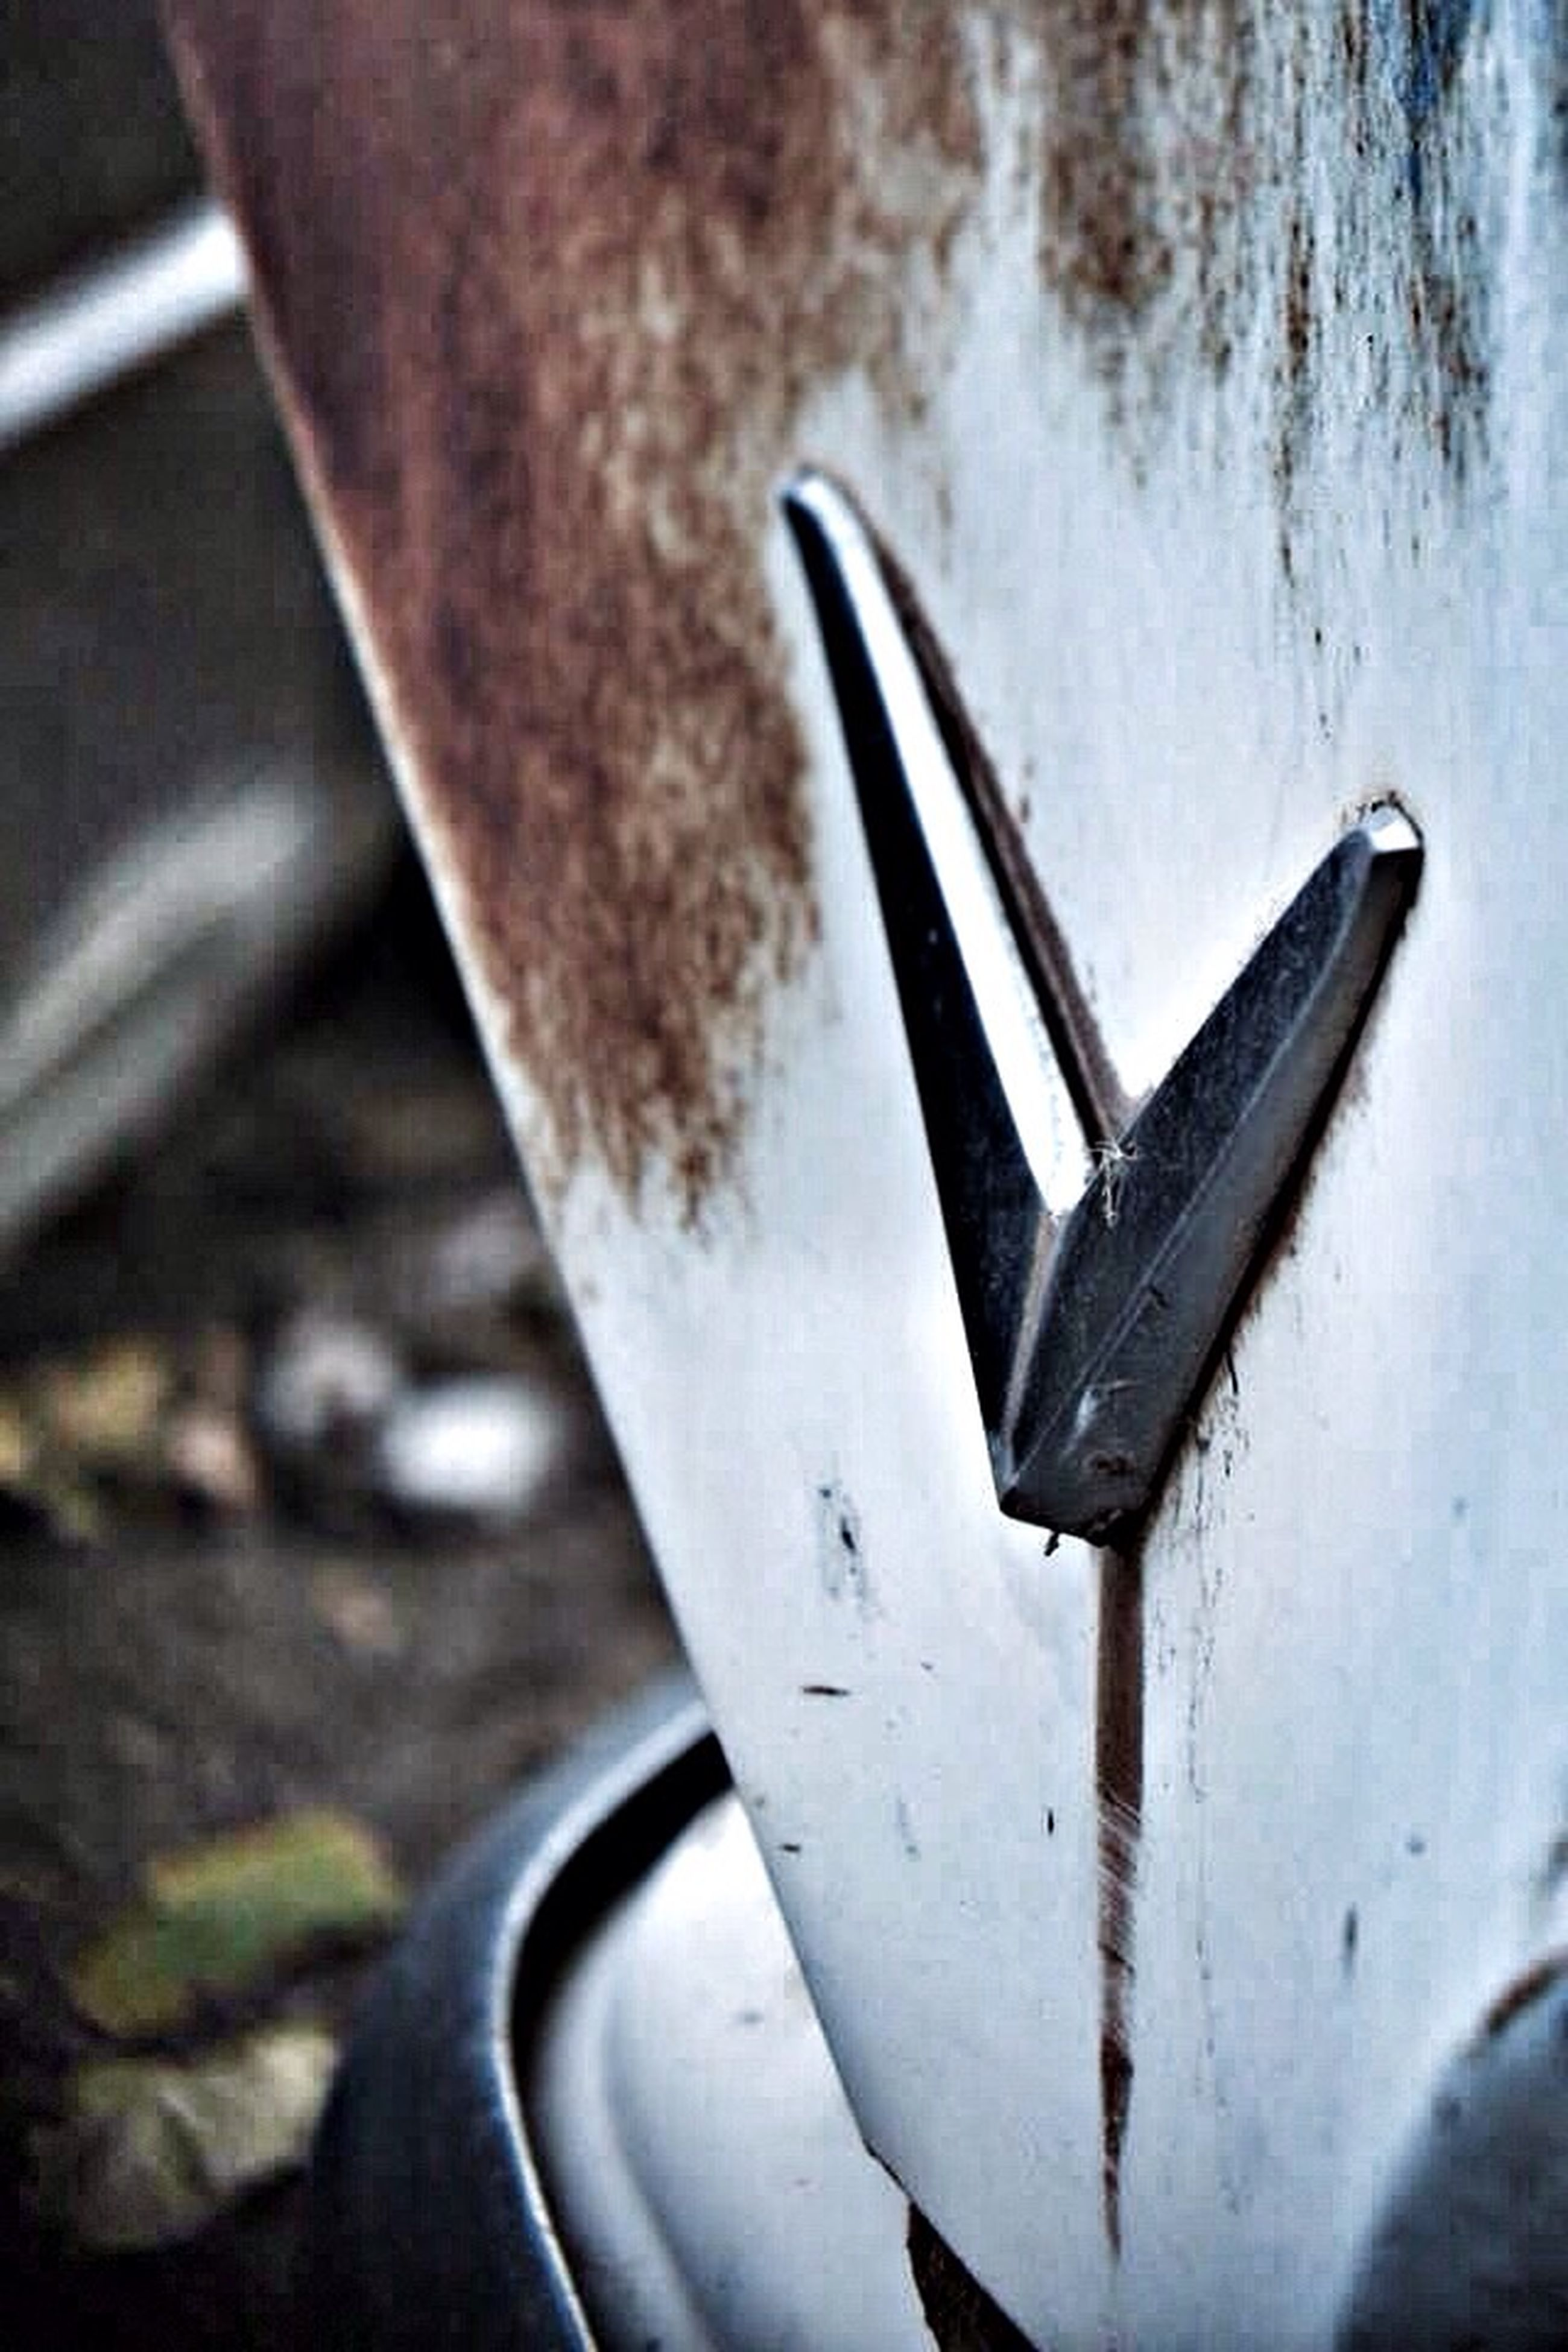 close-up, part of, transportation, metal, cropped, focus on foreground, mode of transport, abandoned, damaged, old, rusty, day, selective focus, metallic, obsolete, no people, outdoors, detail, broken